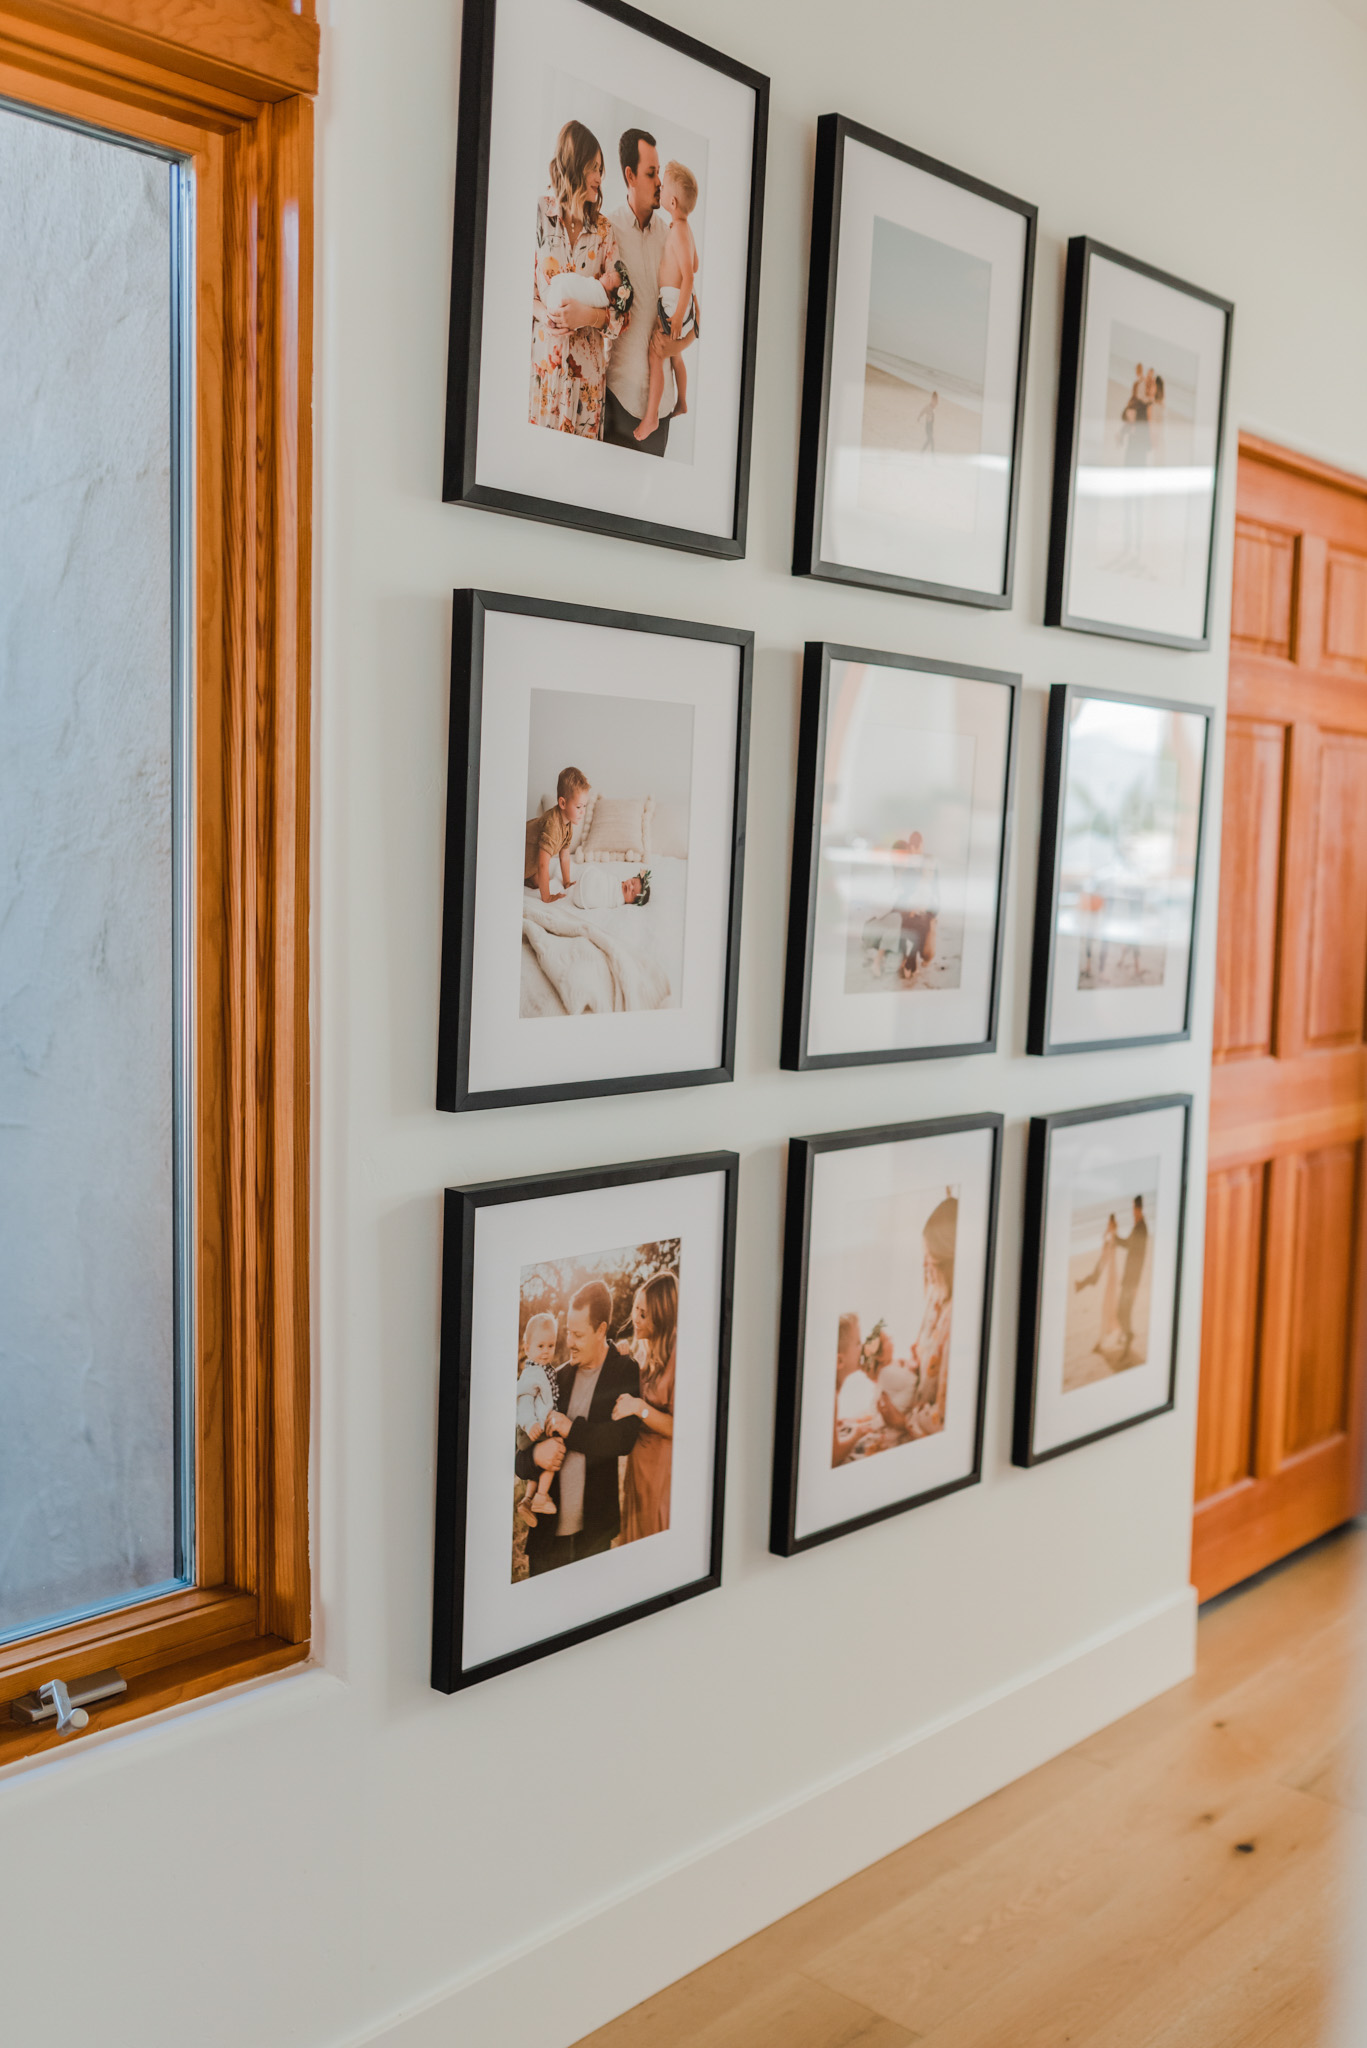 Frambridge Frames by popular San Diego life and style blog, Navy Grace: image of a wall in a home with multiple Framebridge frames hanging on it.